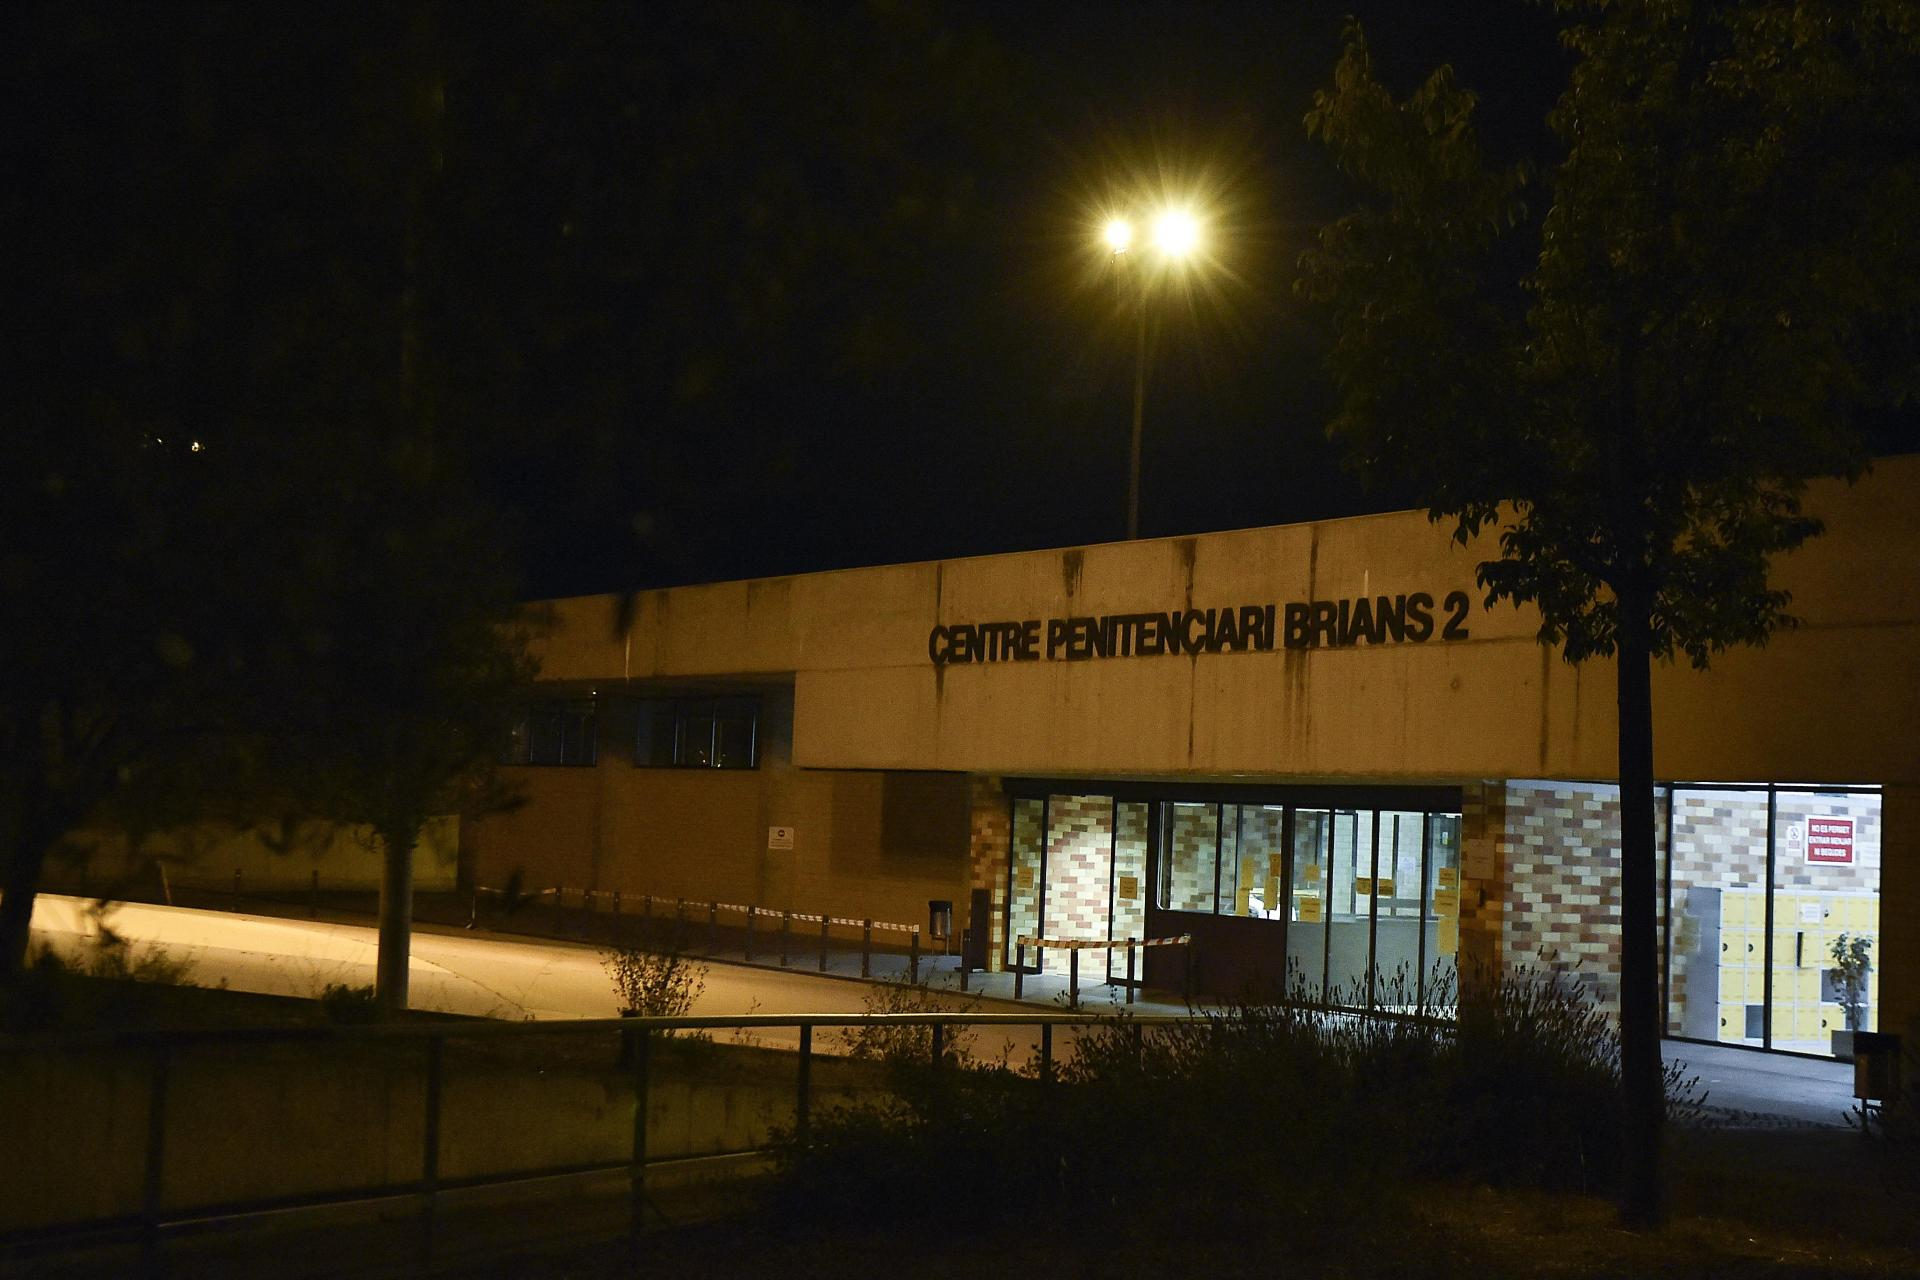 View taken on June 23, 2021 of the Centre Penitenciario Brians 2 jail, in Sant Esteve Sesrovires, near Barcelona, where antivirus software pioneer John McAfee was found dead in his jail cell. Photo: AFP